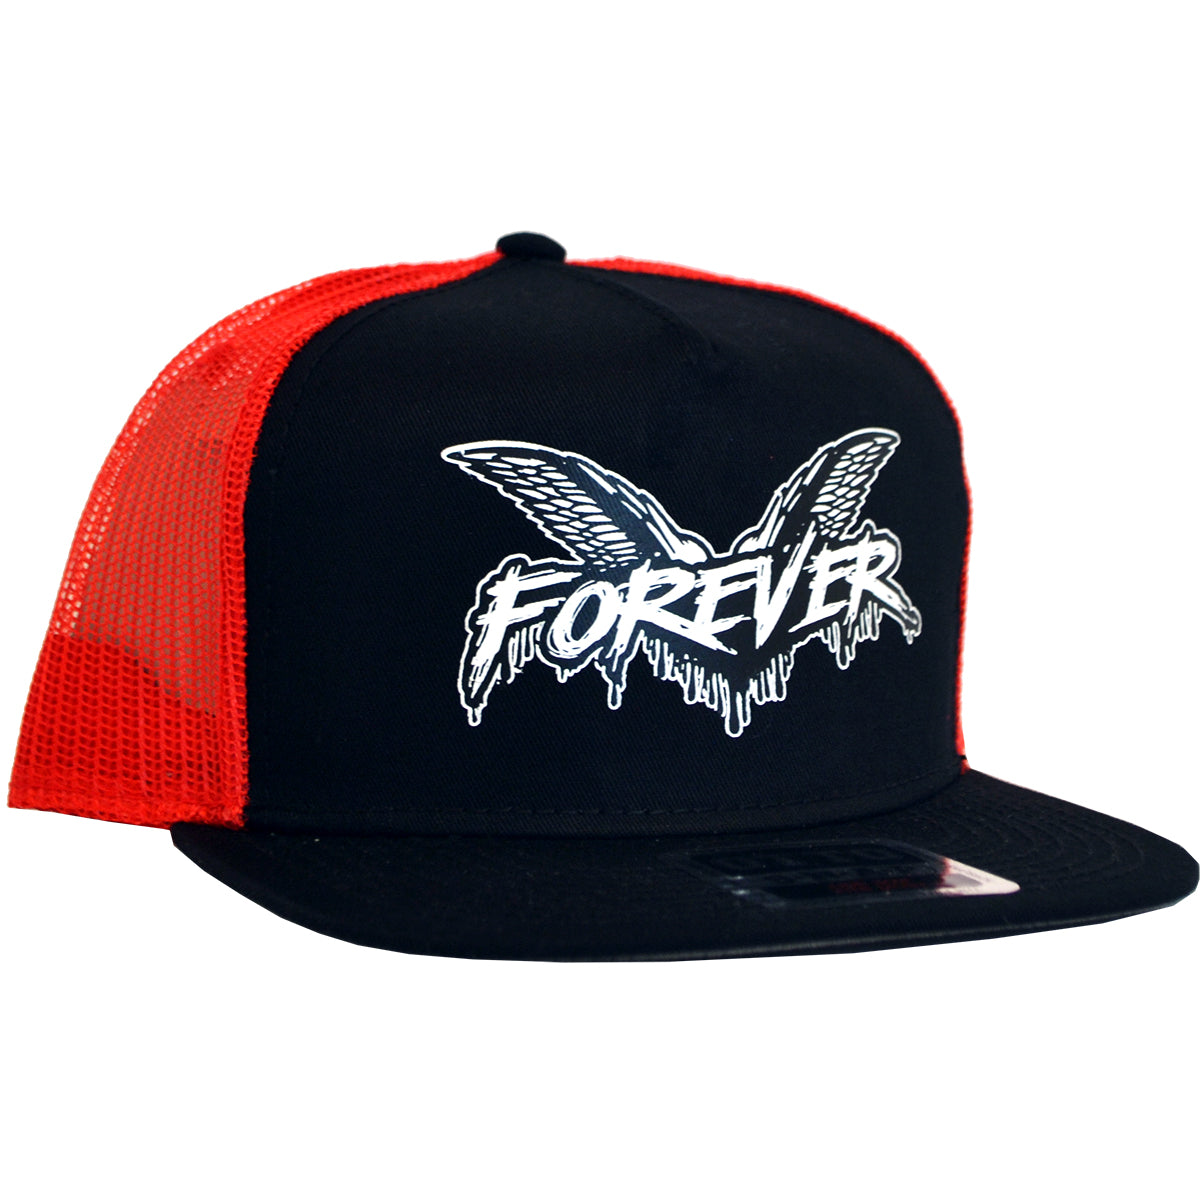 Cock Sparrer - Forever - Black w/ Red Mesh - Otto Snapback Hat